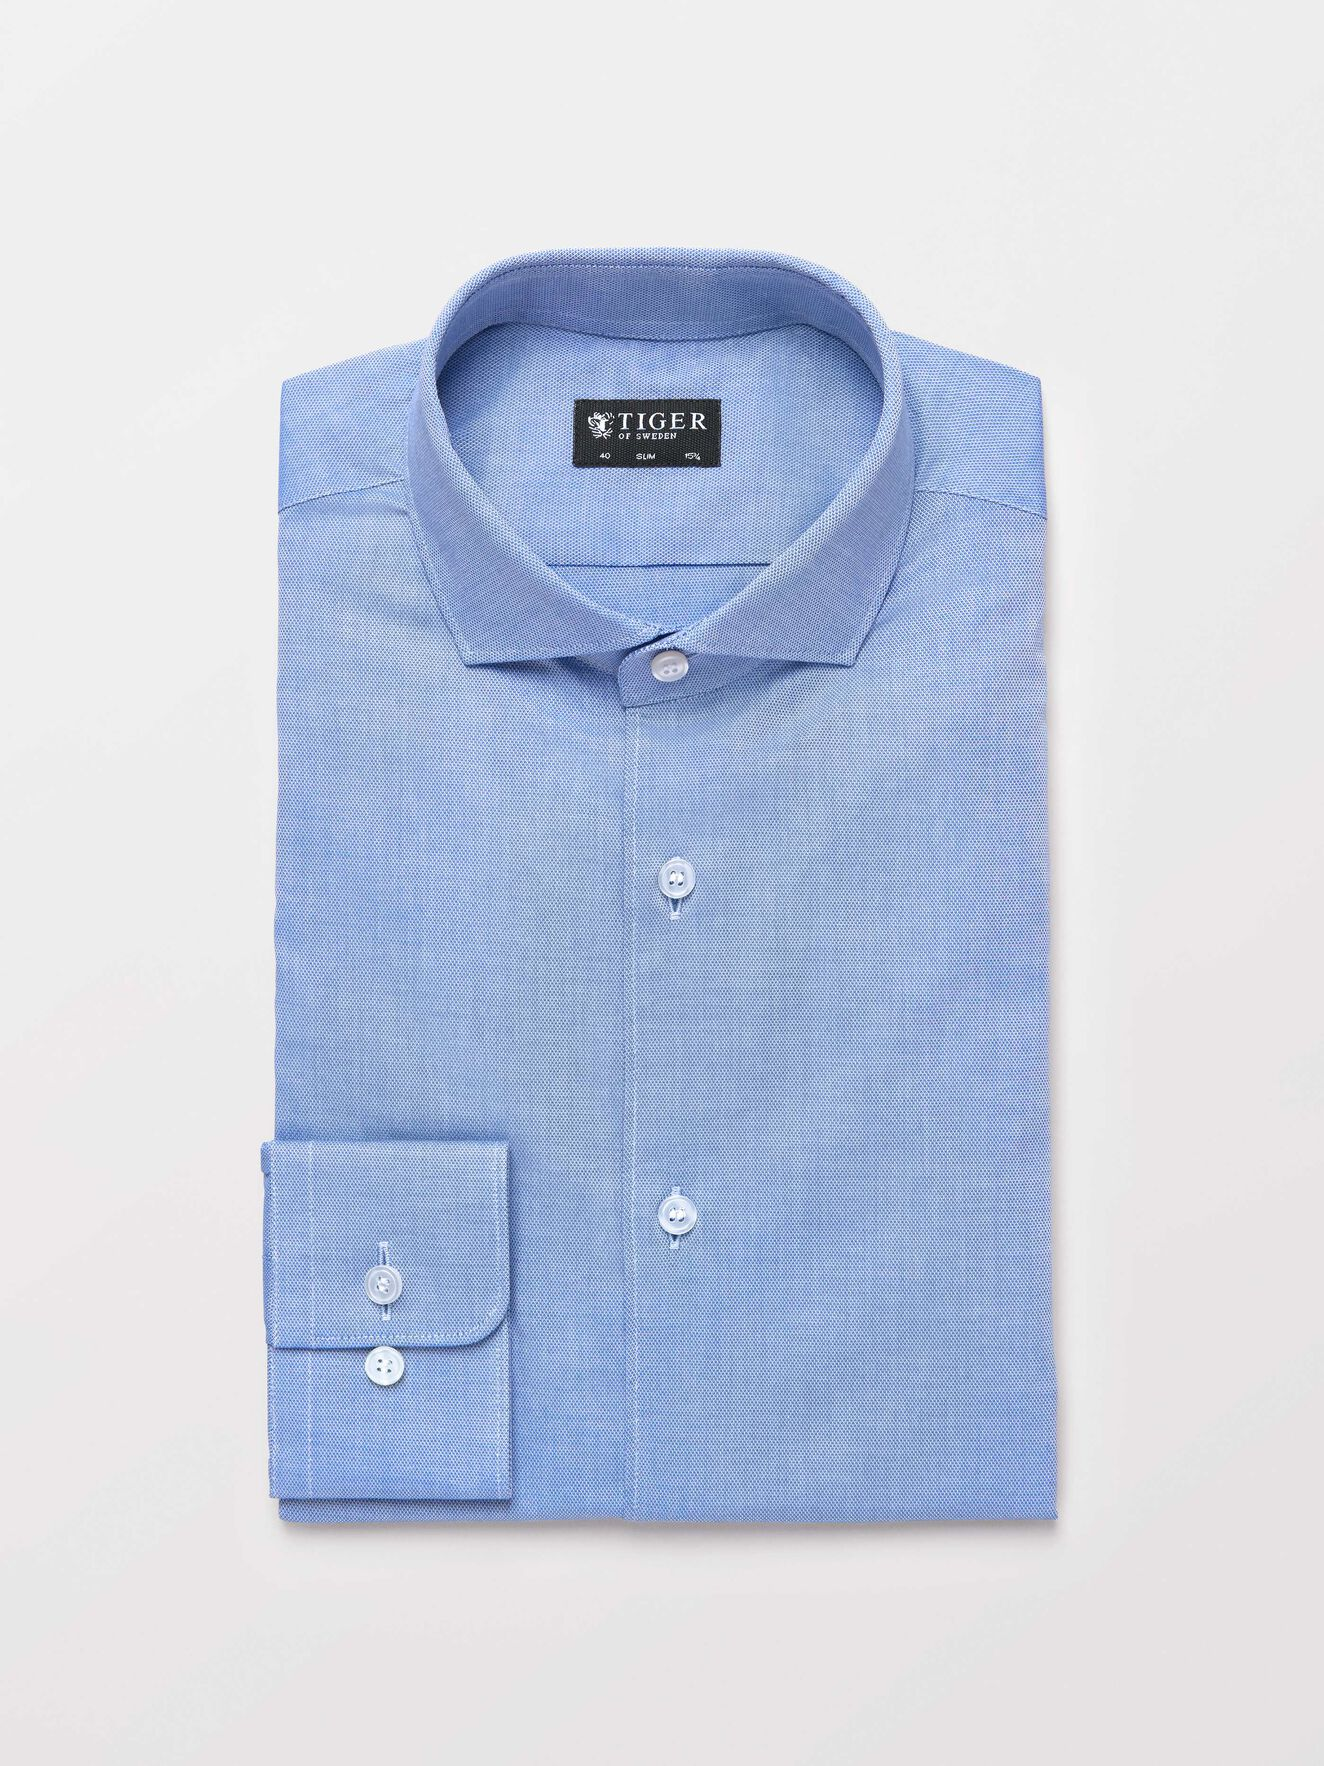 Farrell 5 Shirt in Blue from Tiger of Sweden